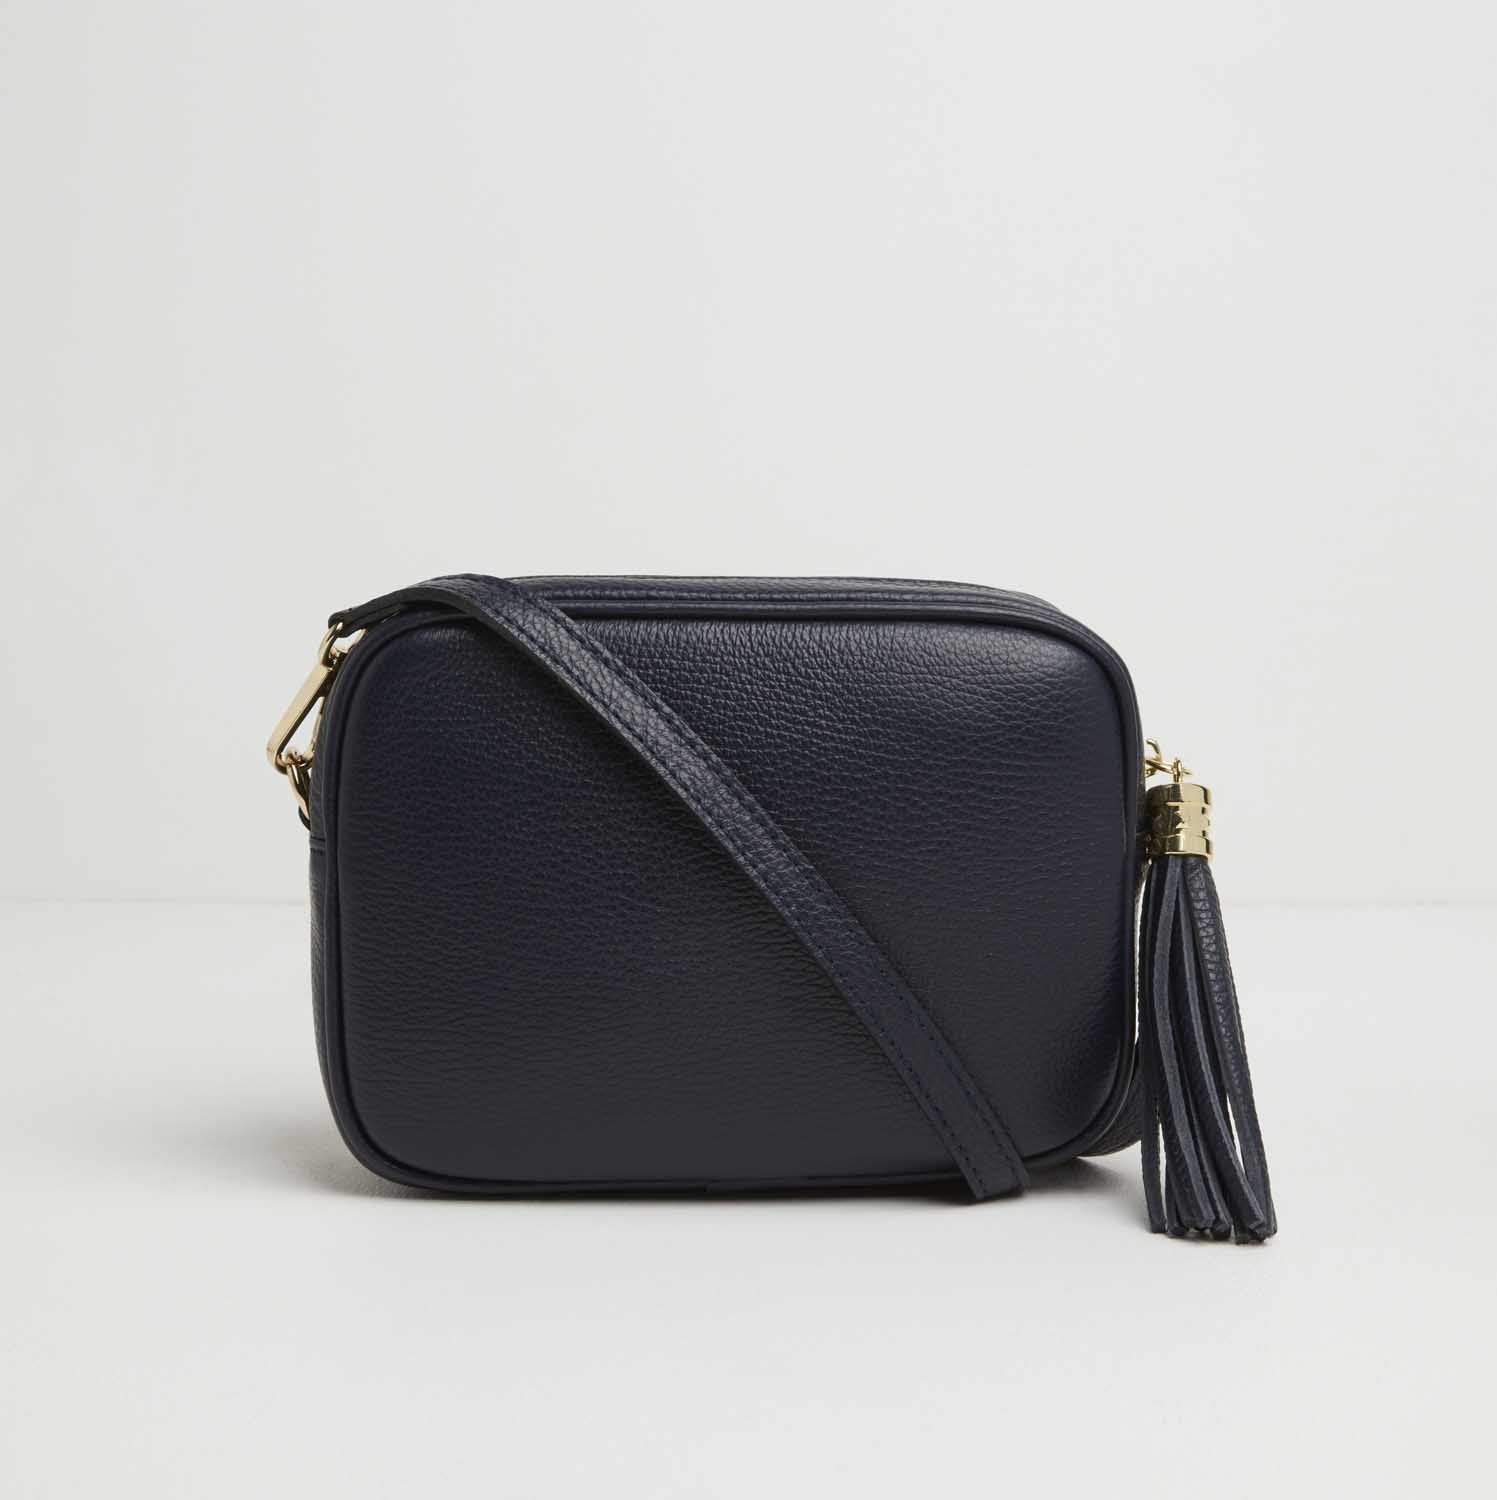 Verona Crossbody Tassel Navy Bag with Pastel Strap